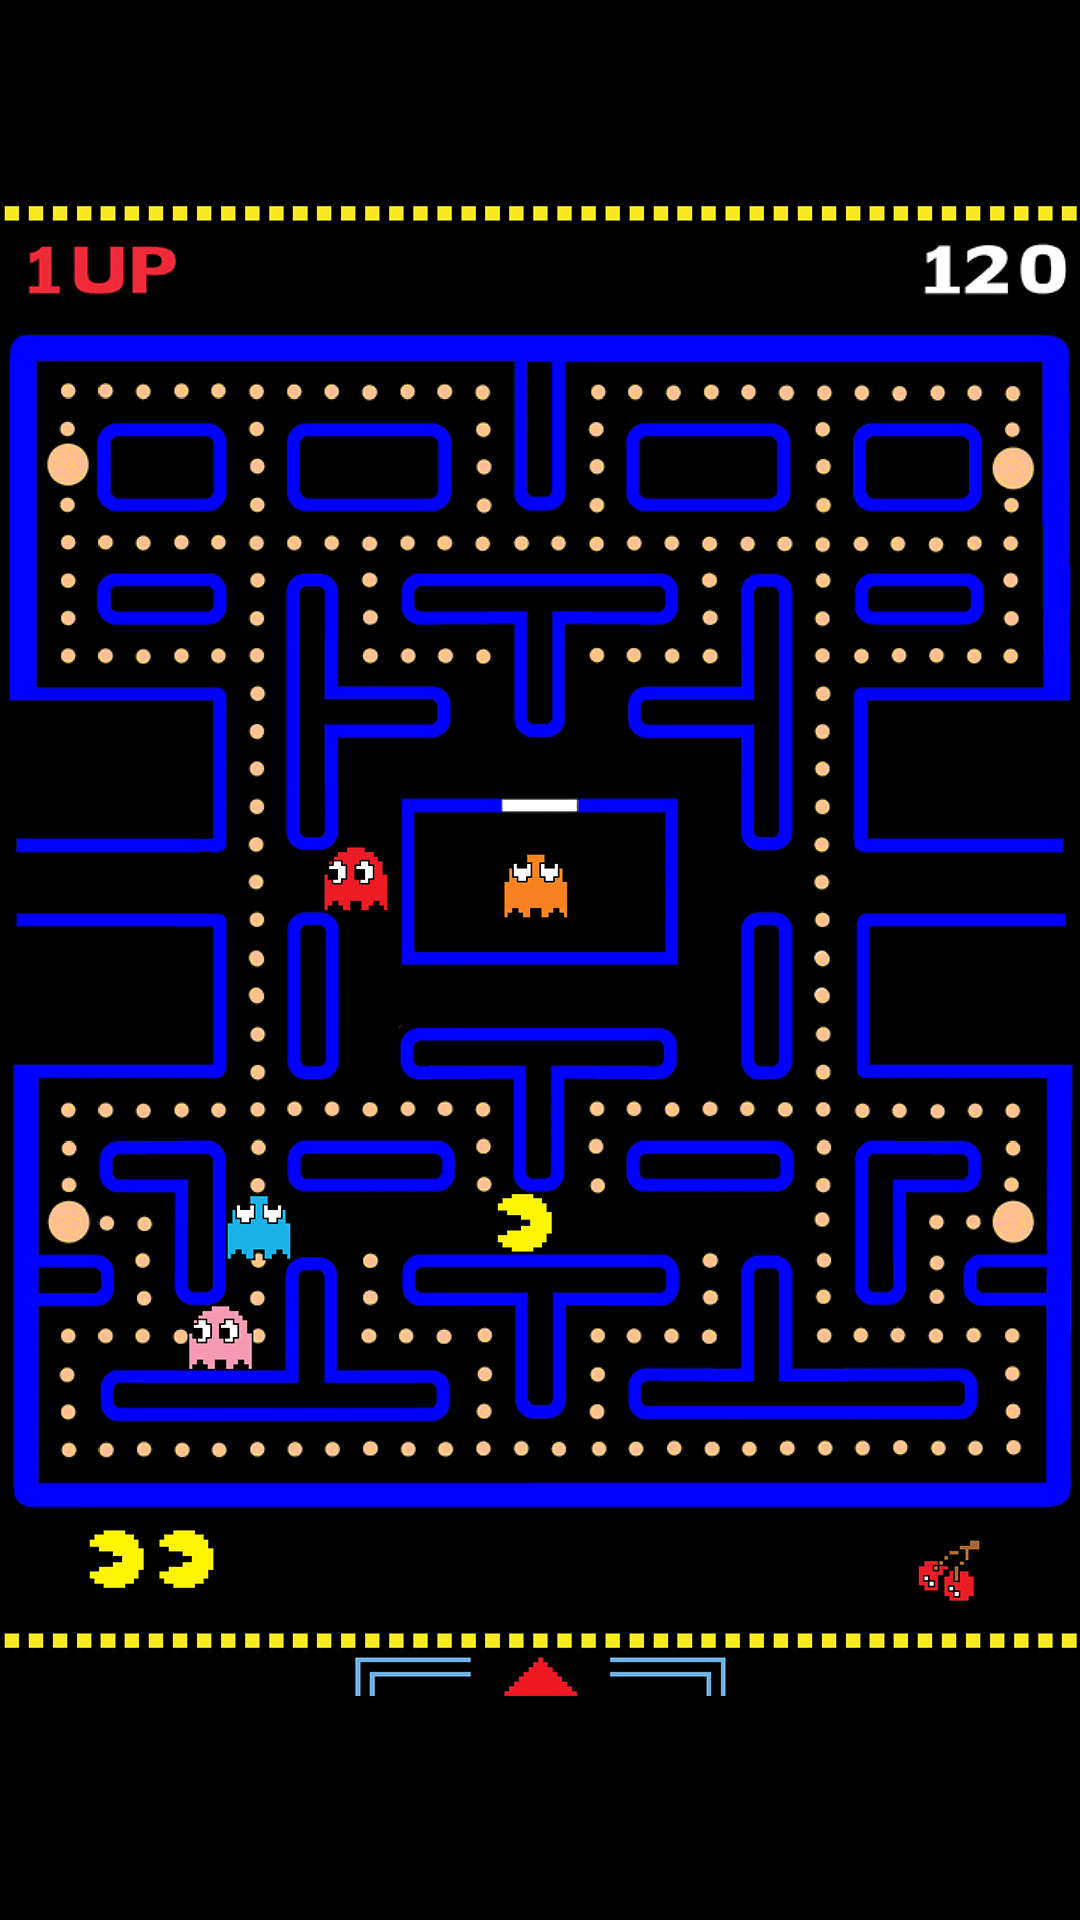 Pacman Wallpaper Iphone X Ultra Hd Pac Man Wallpaper For Your Mobile Phone 0197